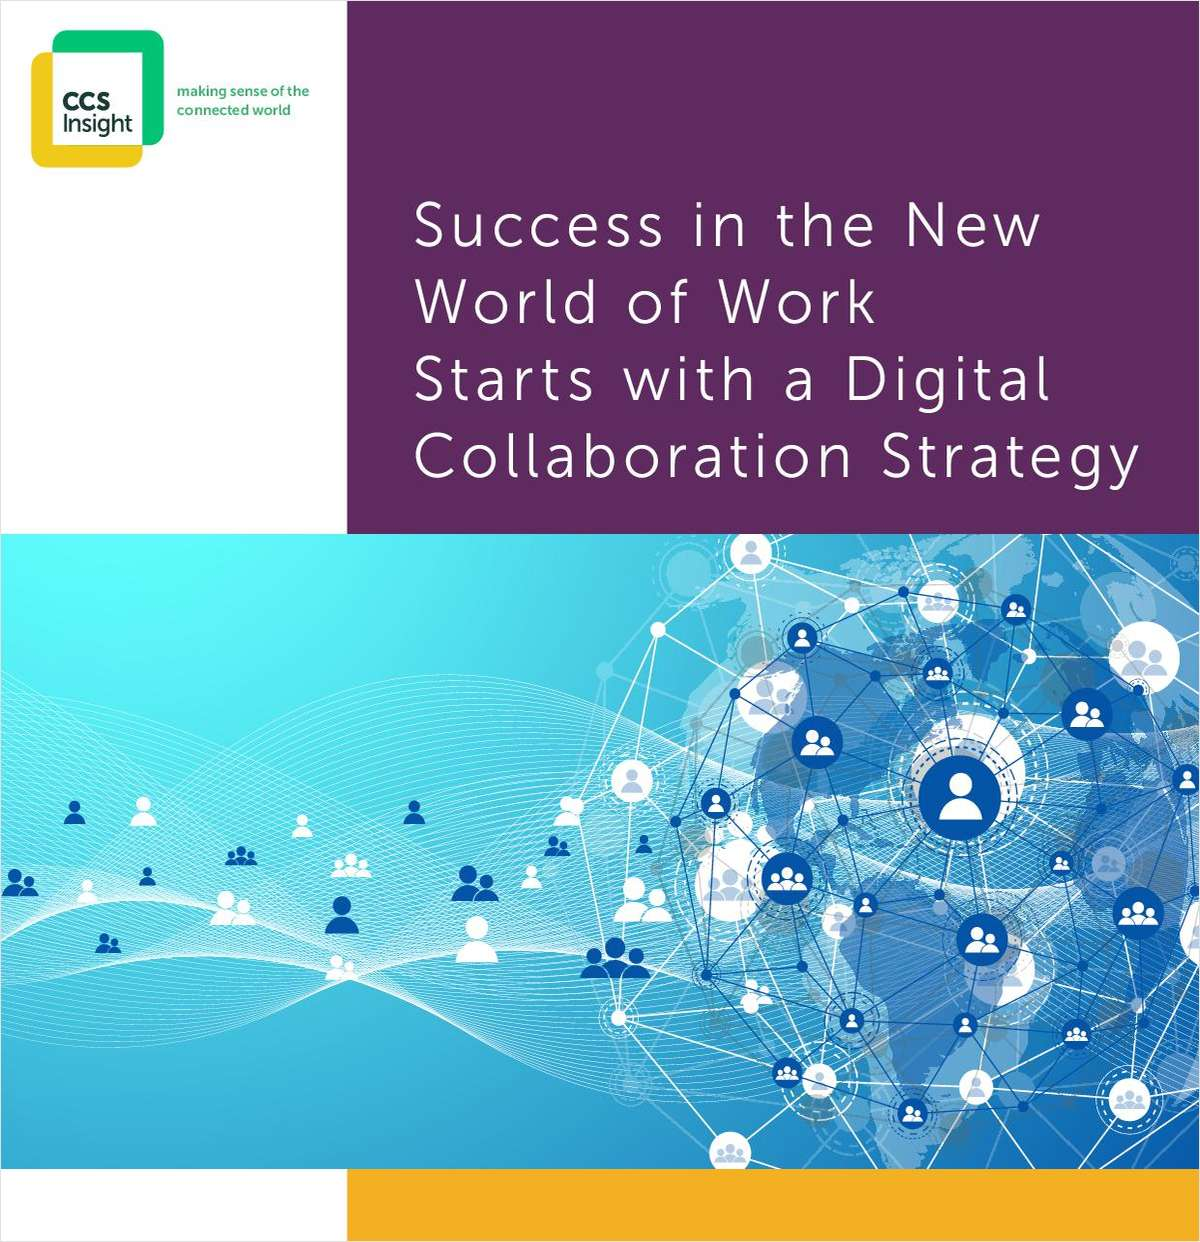 Success in the New World of Work Starts with a Digital Collaboration Strategy